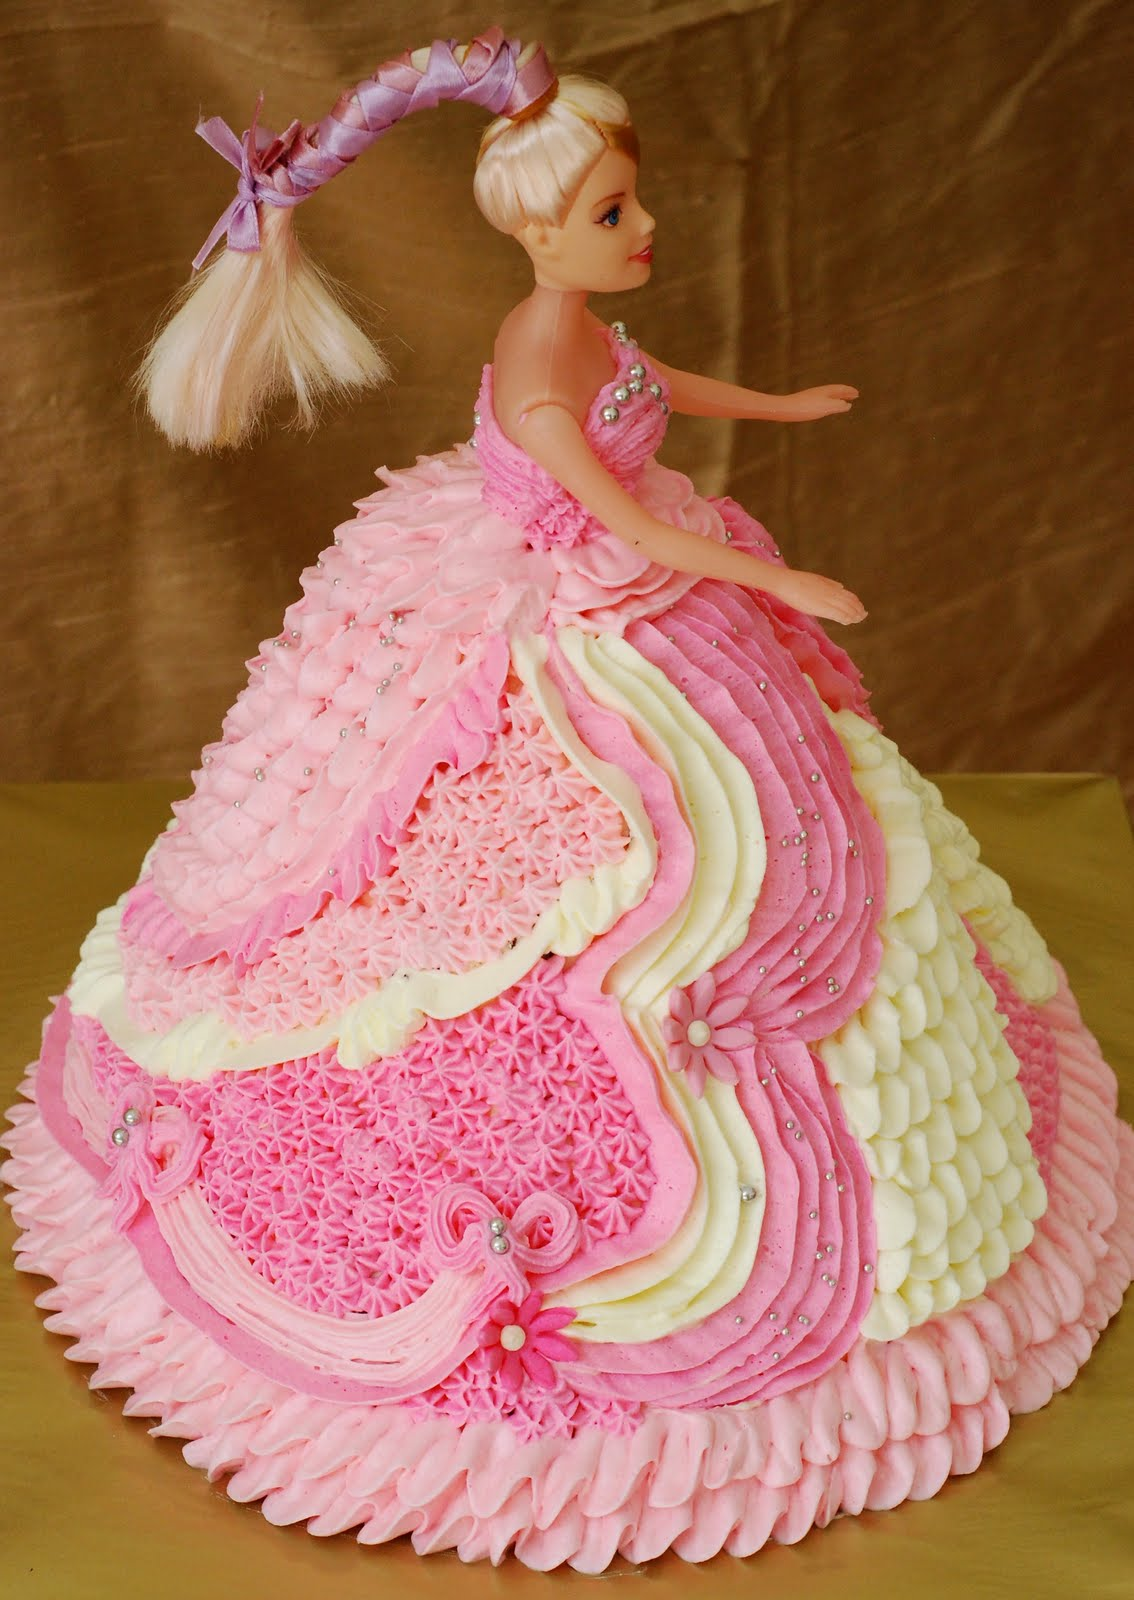 Images Of A Barbie Cake : Barbie Cakes   Decoration Ideas Little Birthday Cakes